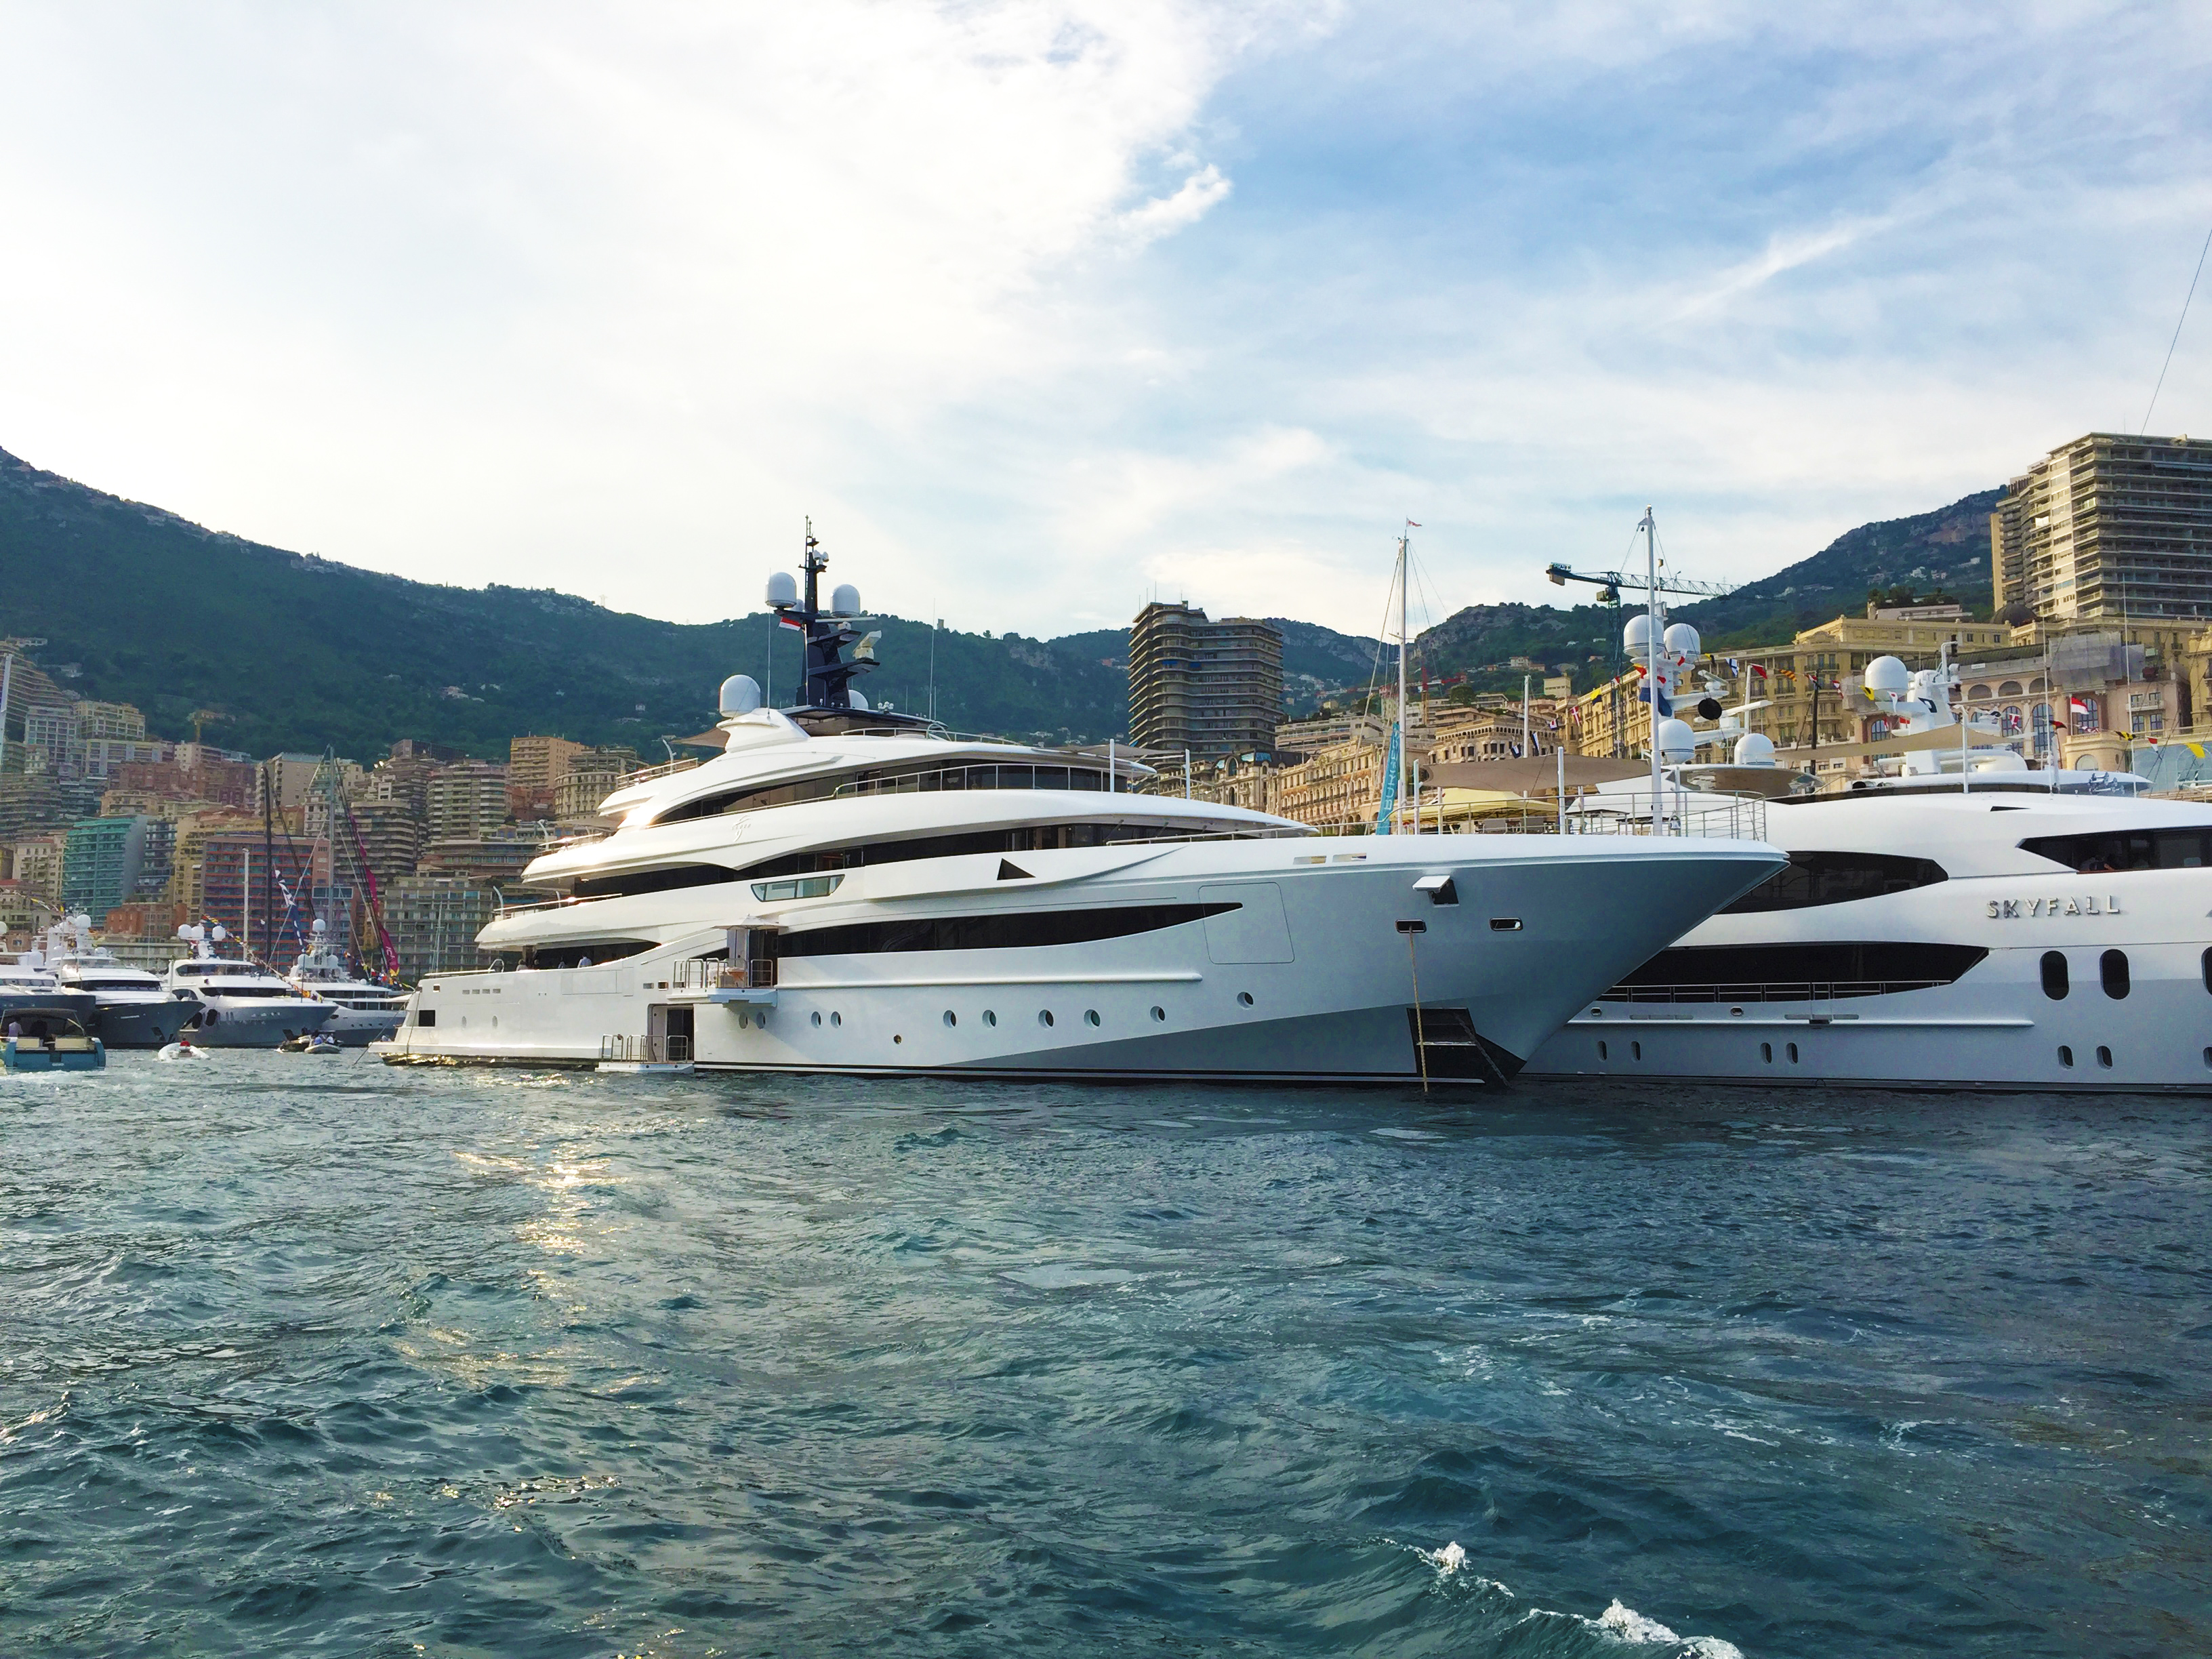 IMG 9584 1 What to Expect at the Monaco Yacht Show 2018 - EAT LOVE SAVOR International luxury lifestyle magazine and bookazines